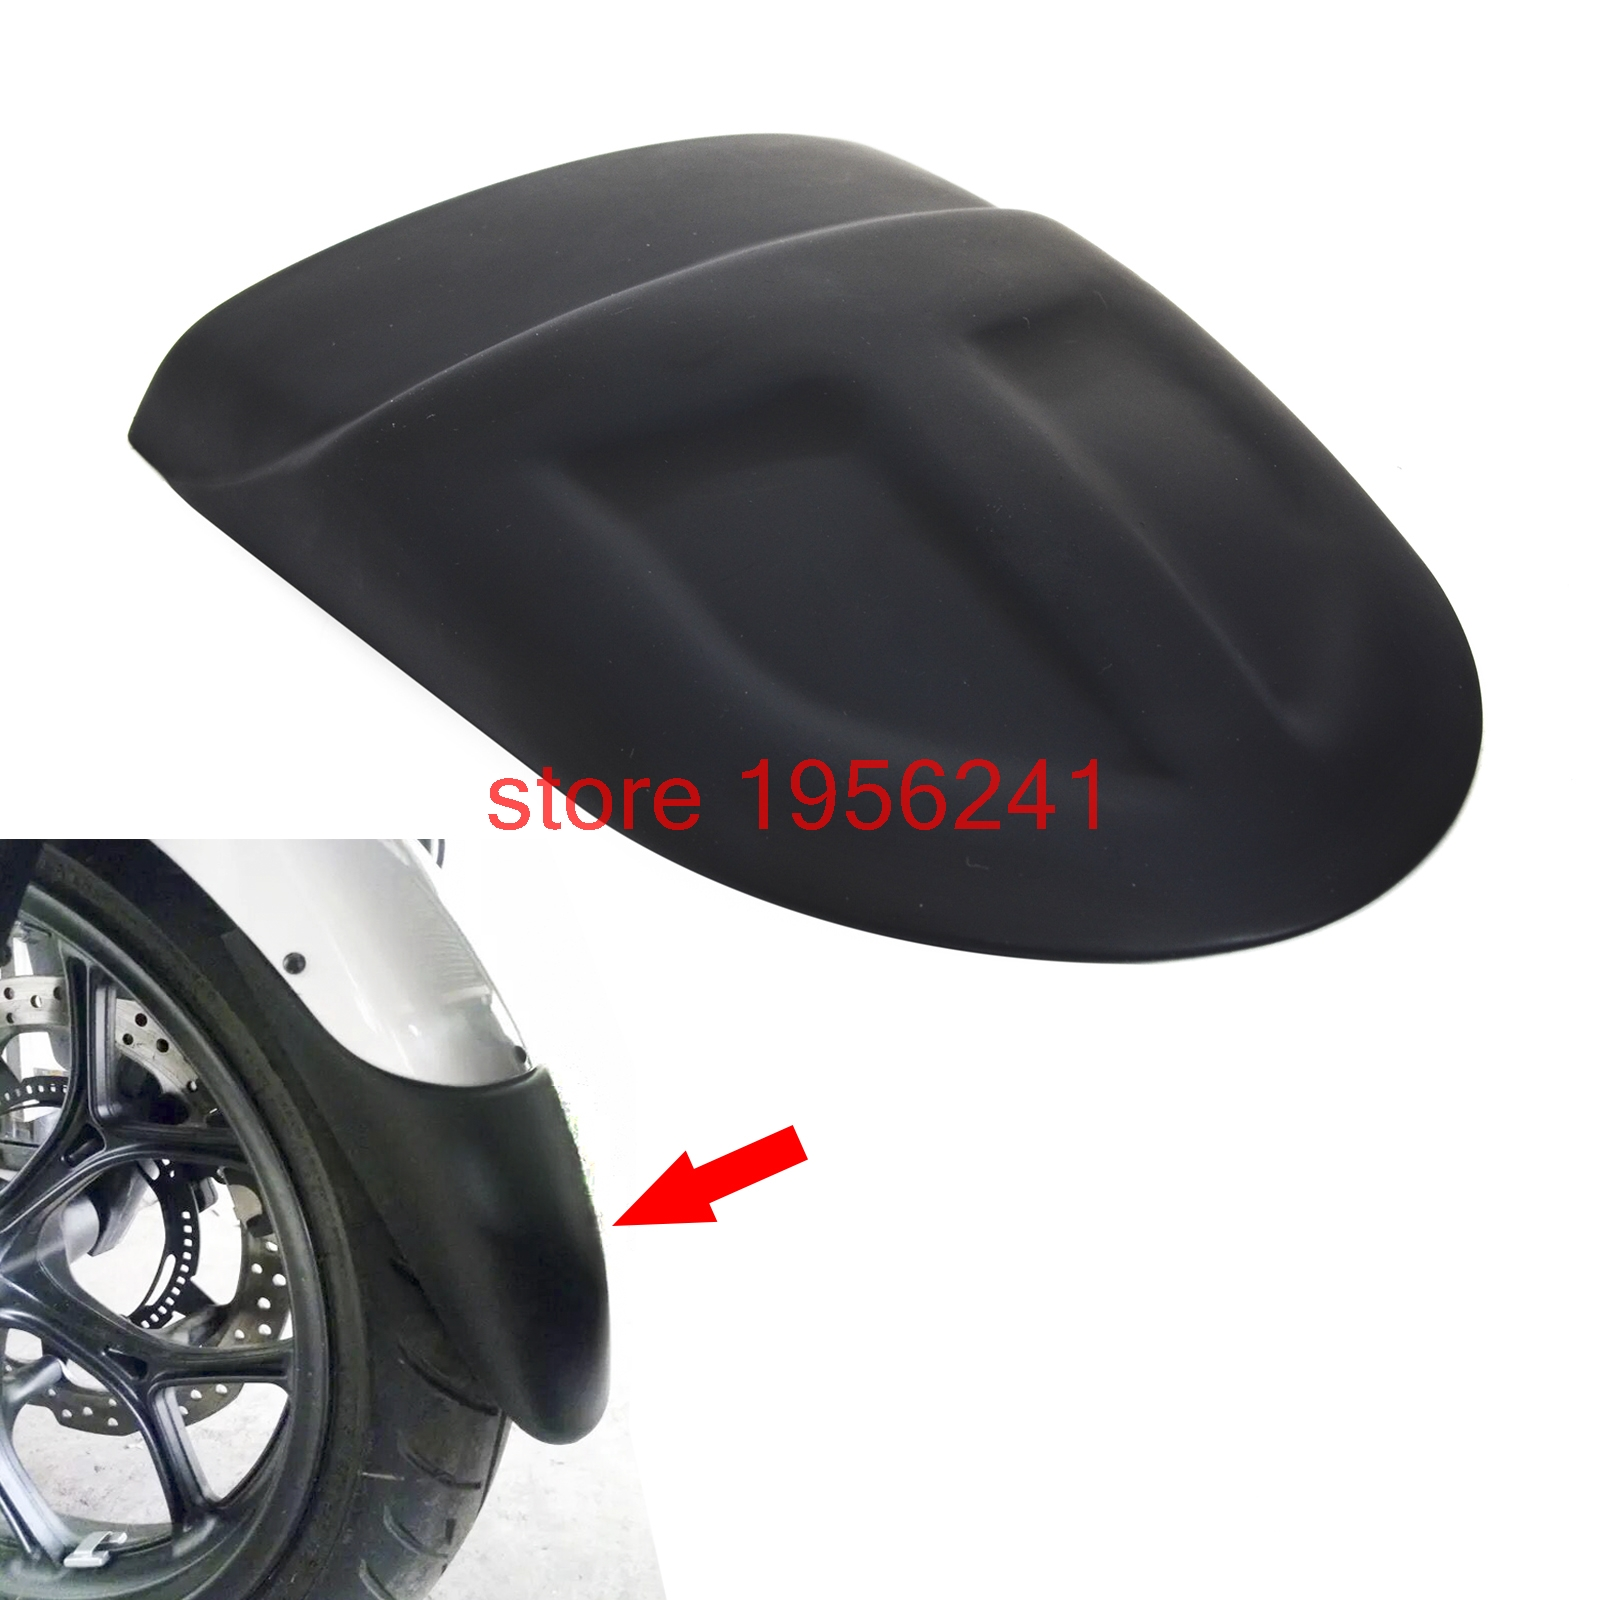 Motorcycle Front Fender Extension Extender For Honda NC700X NC700S NC750X NC750S 2012 2013 2014 2015 NC700 NC750 S/X m20 2 5 motorcycle cnc magnetic engine oil filler cap for honda nc700 nc750s nc750x cb500x motor bike accessoreis